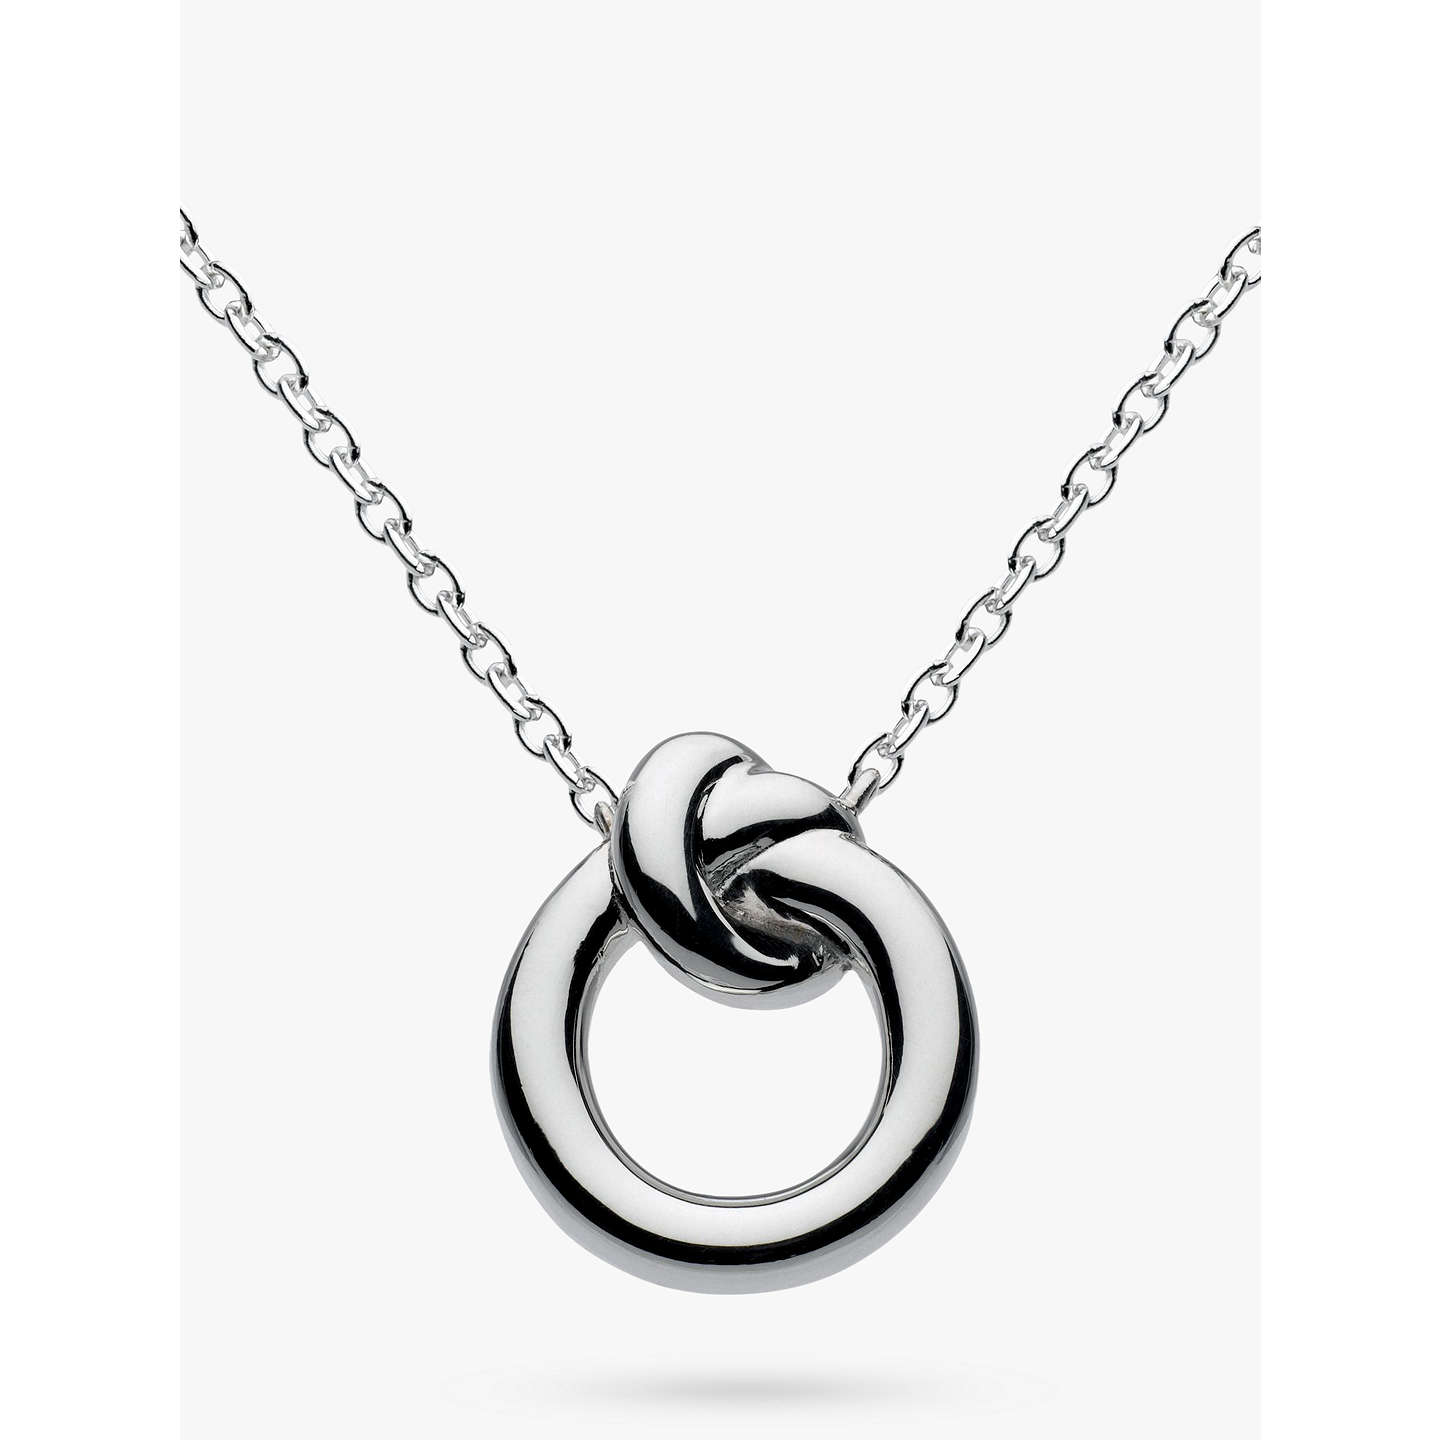 jewelry pendant knot photography stock home item diamond